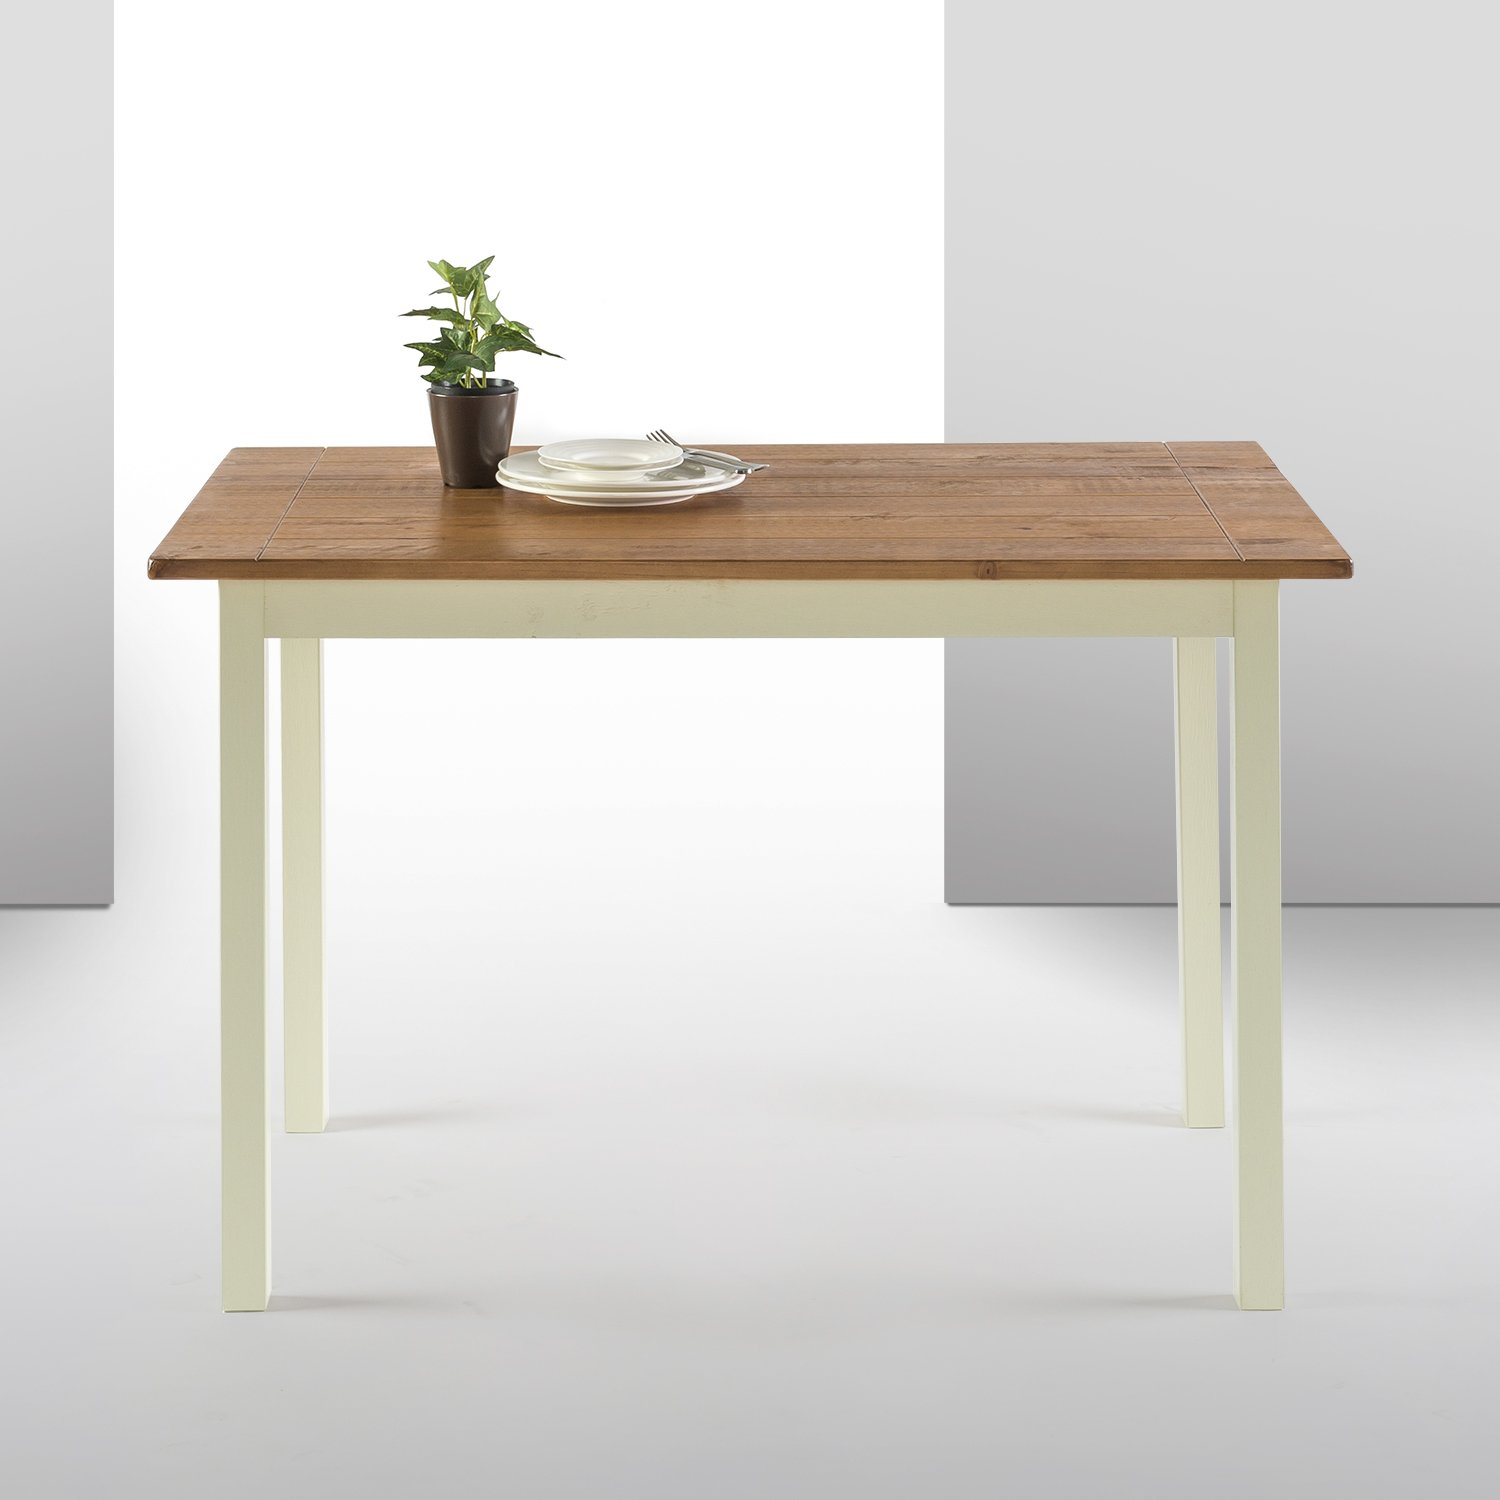 Zinus Becky Farmhouse Wood Dining Table / Table Only by Zinus